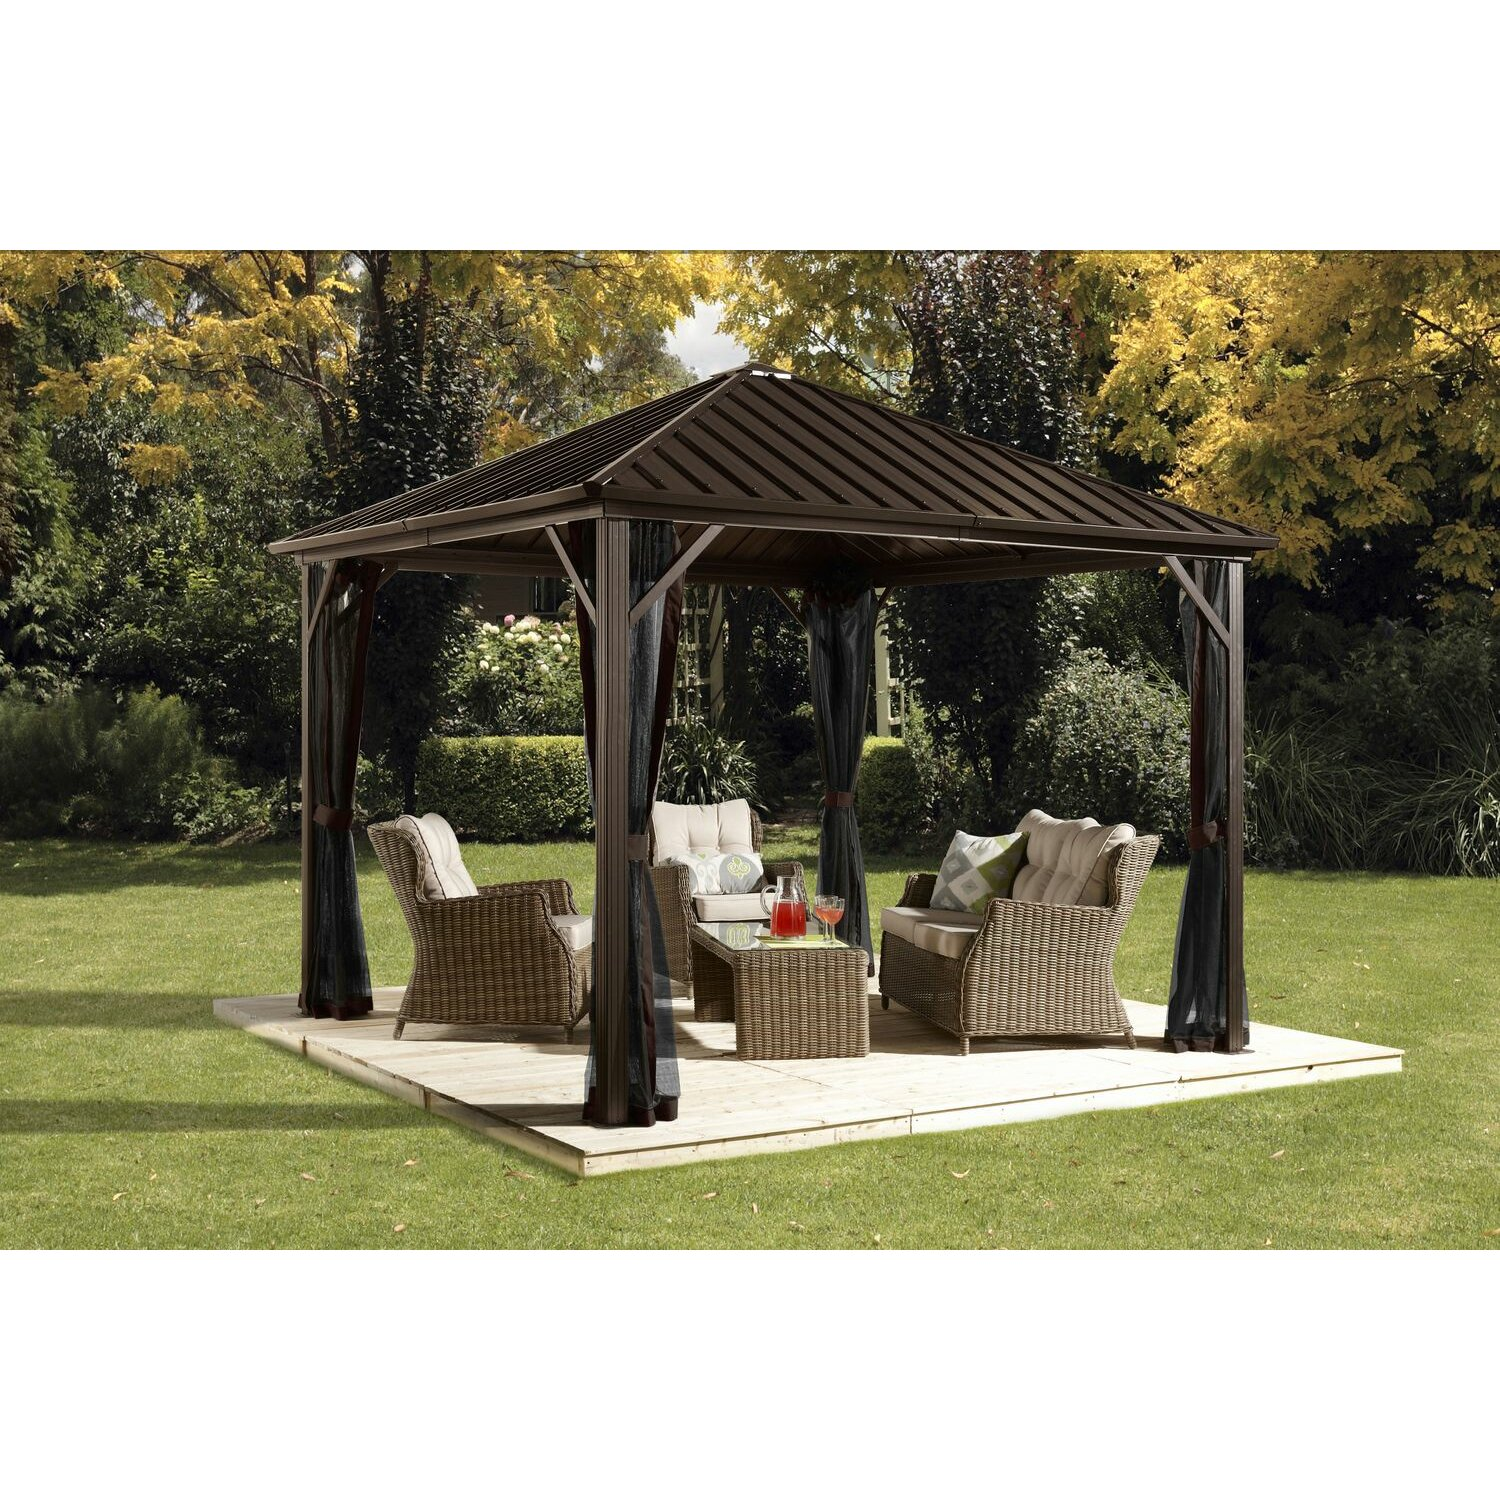 Sojag dakota 10 39 x 12 39 gazebo reviews wayfair for Abri mural hardtop gazebo